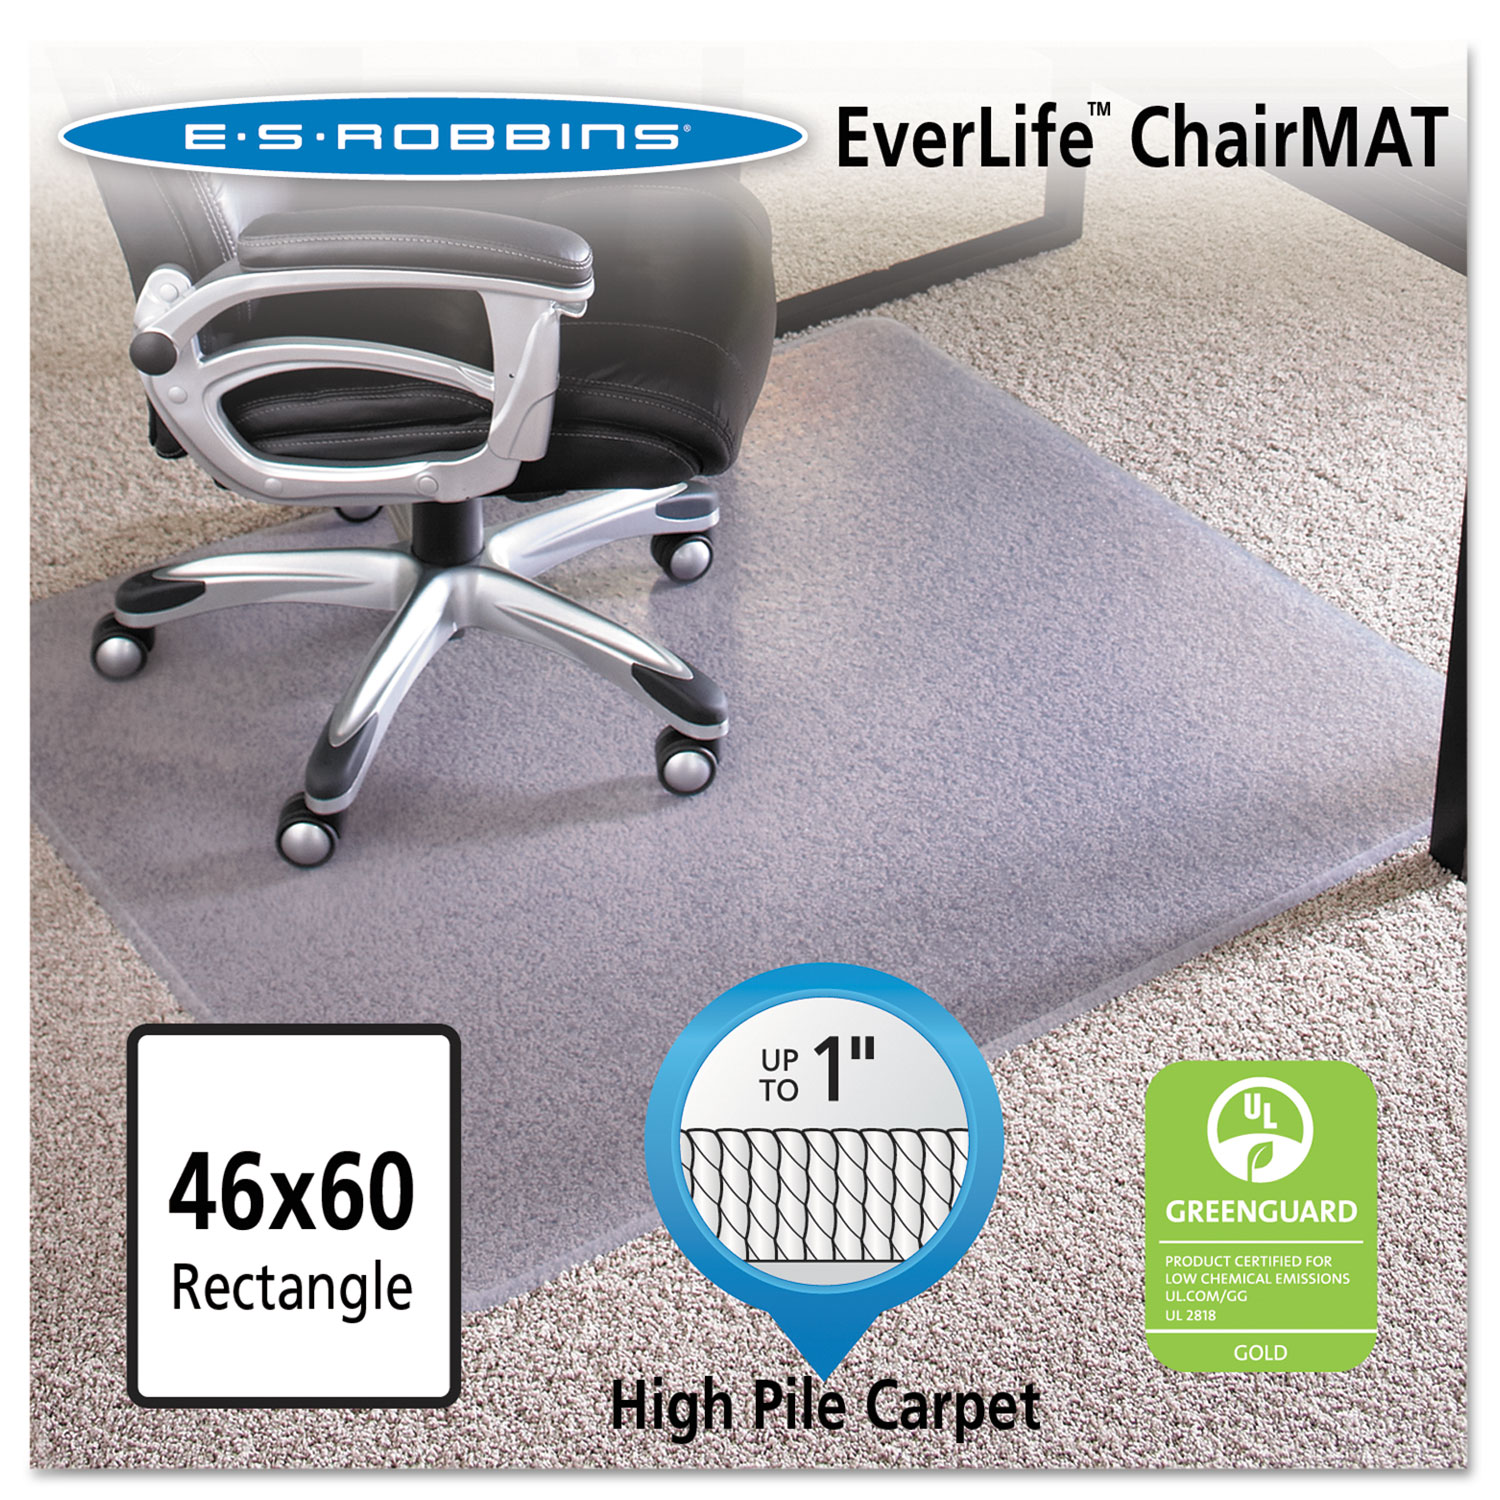 46x60 rectangle chair mat by es robbinsa esr124377